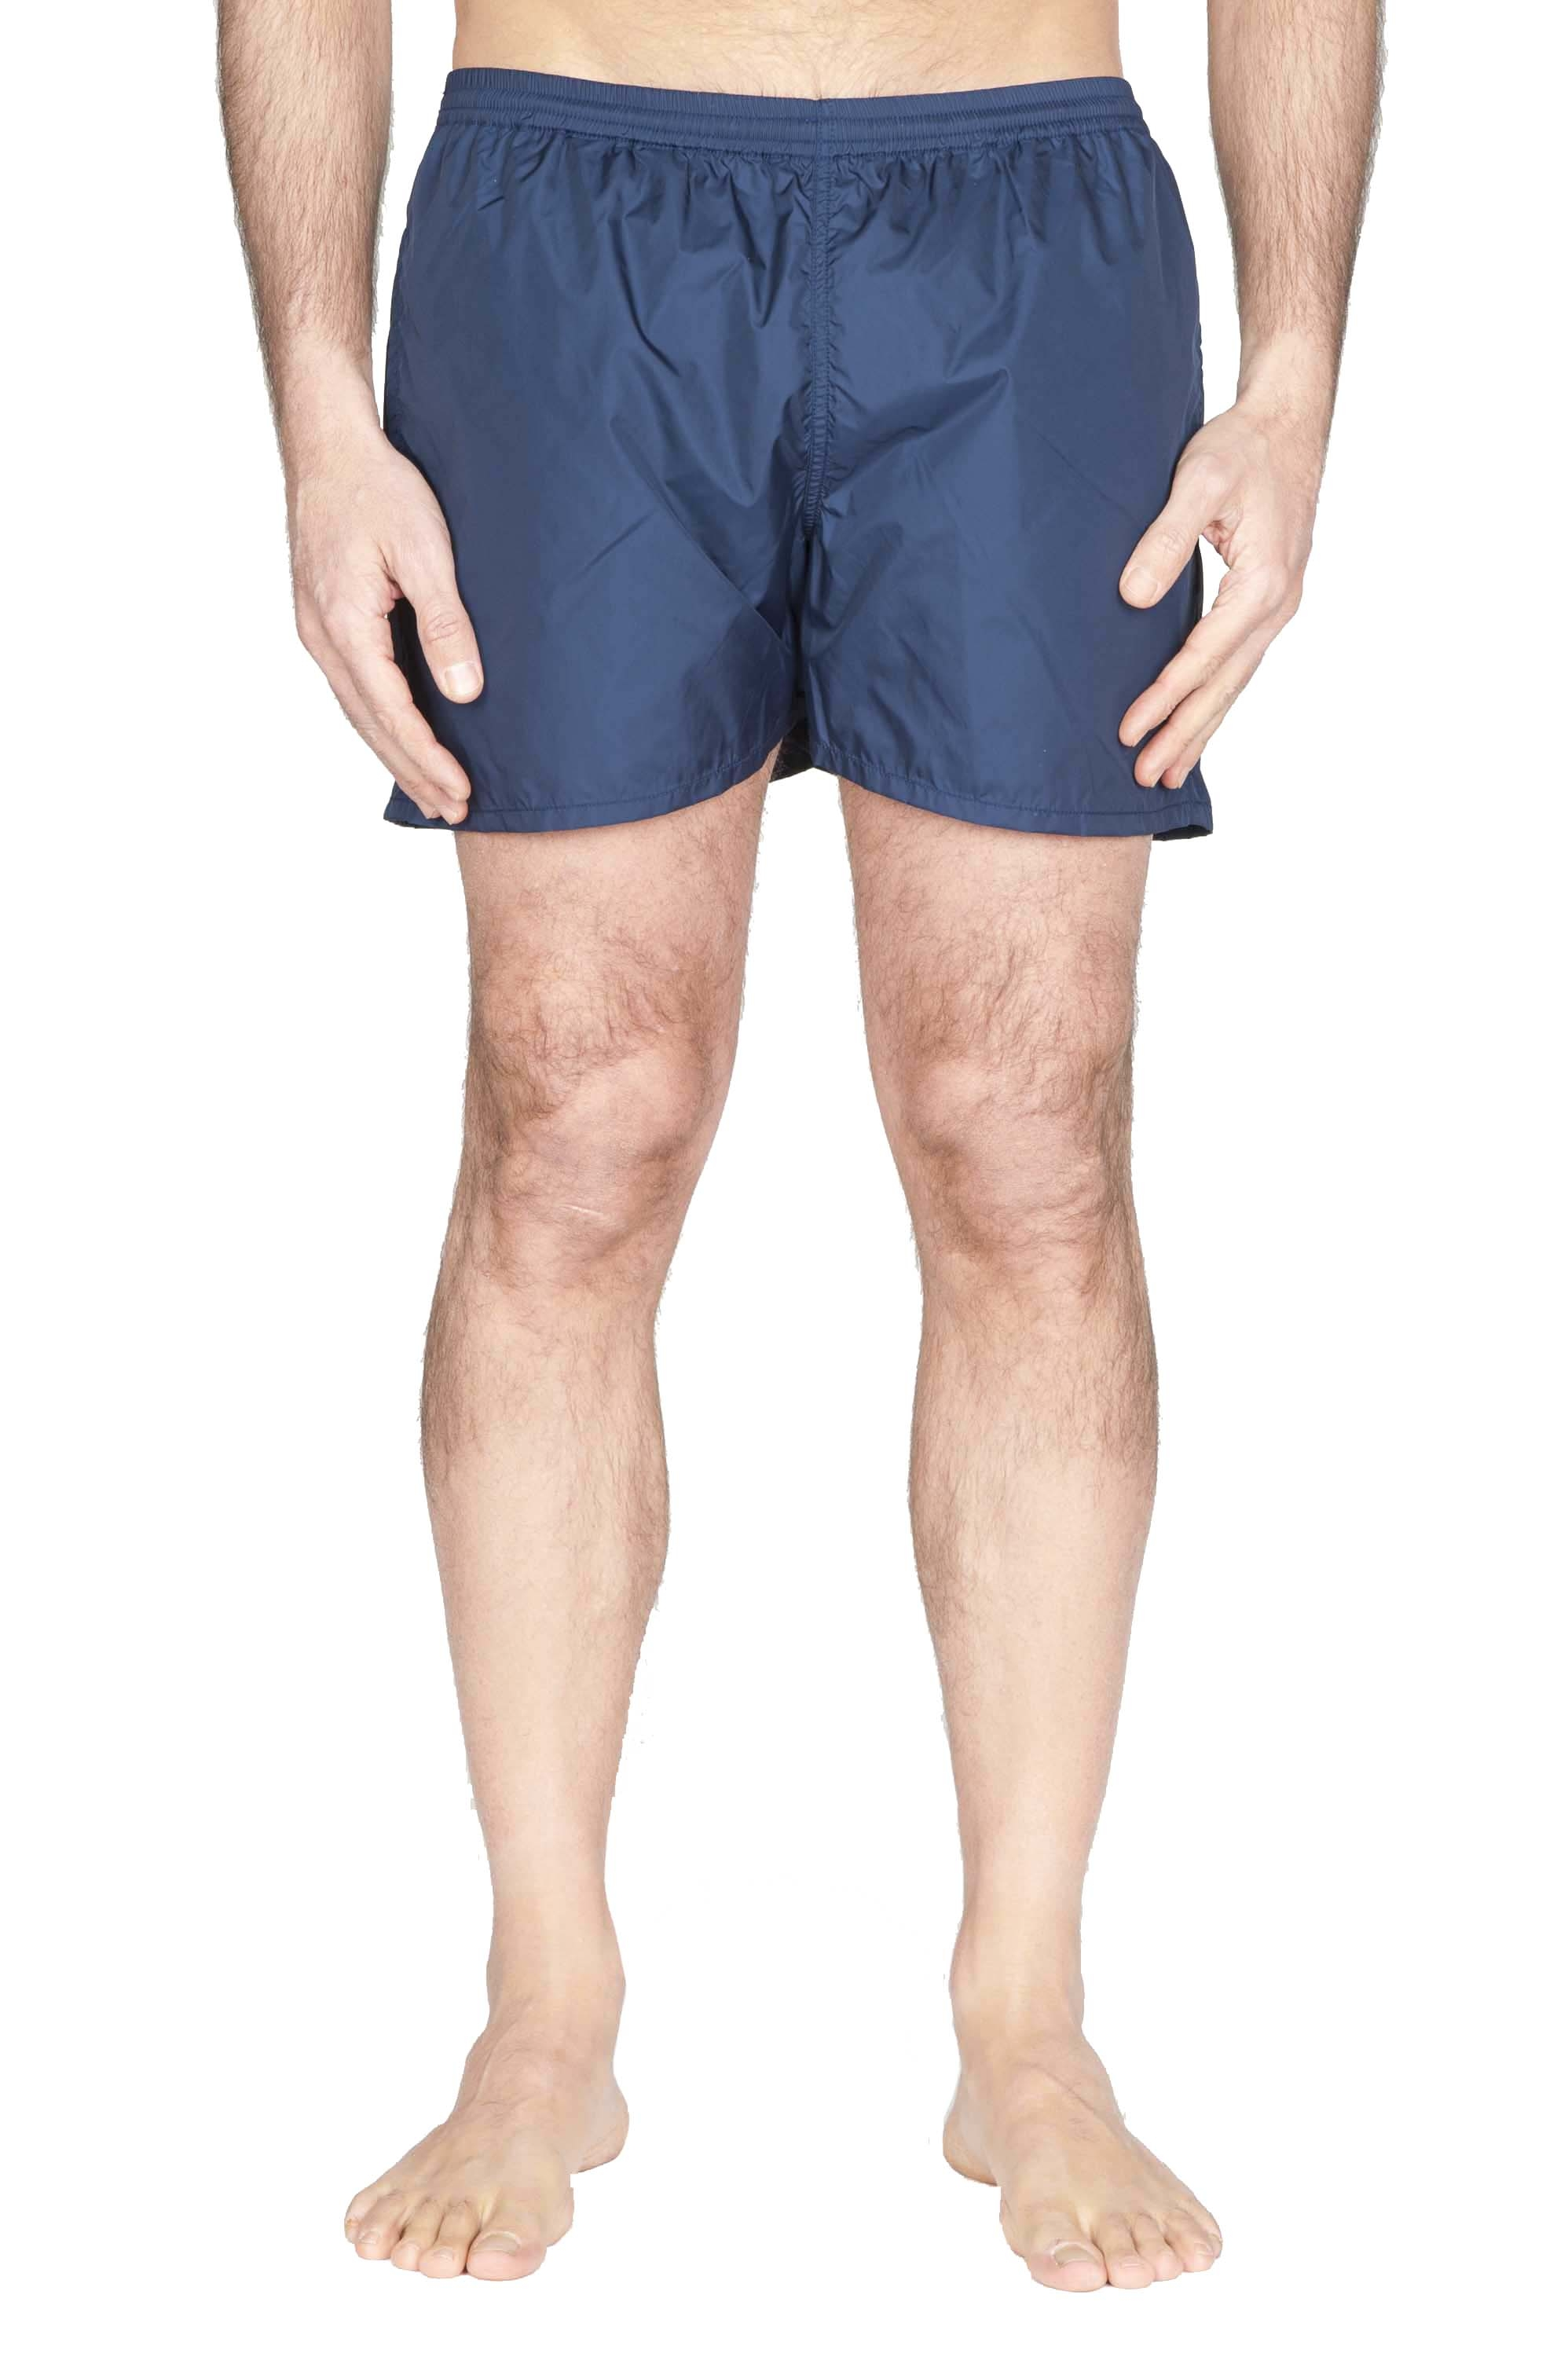 SBU 01758 Tactical swimsuit trunks in navy blue ultra-lightweight nylon 01